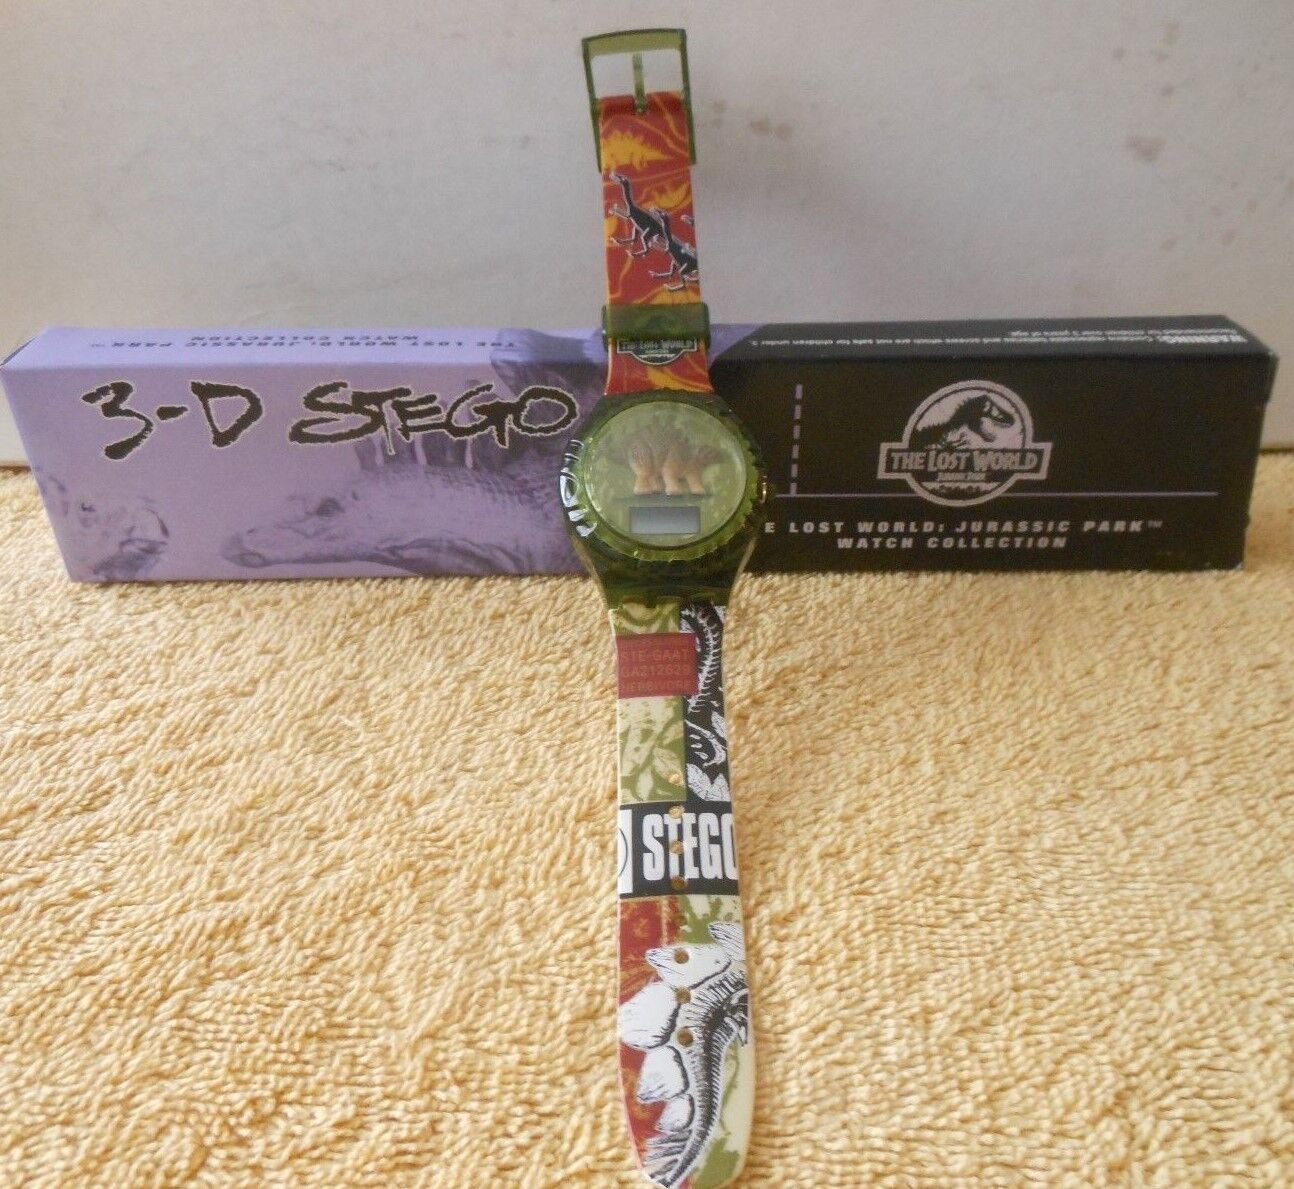 THE LOST WORLD: JURASSIC PARK WATCH COLLECTION 1997 BURGER KING 3-D STEGO